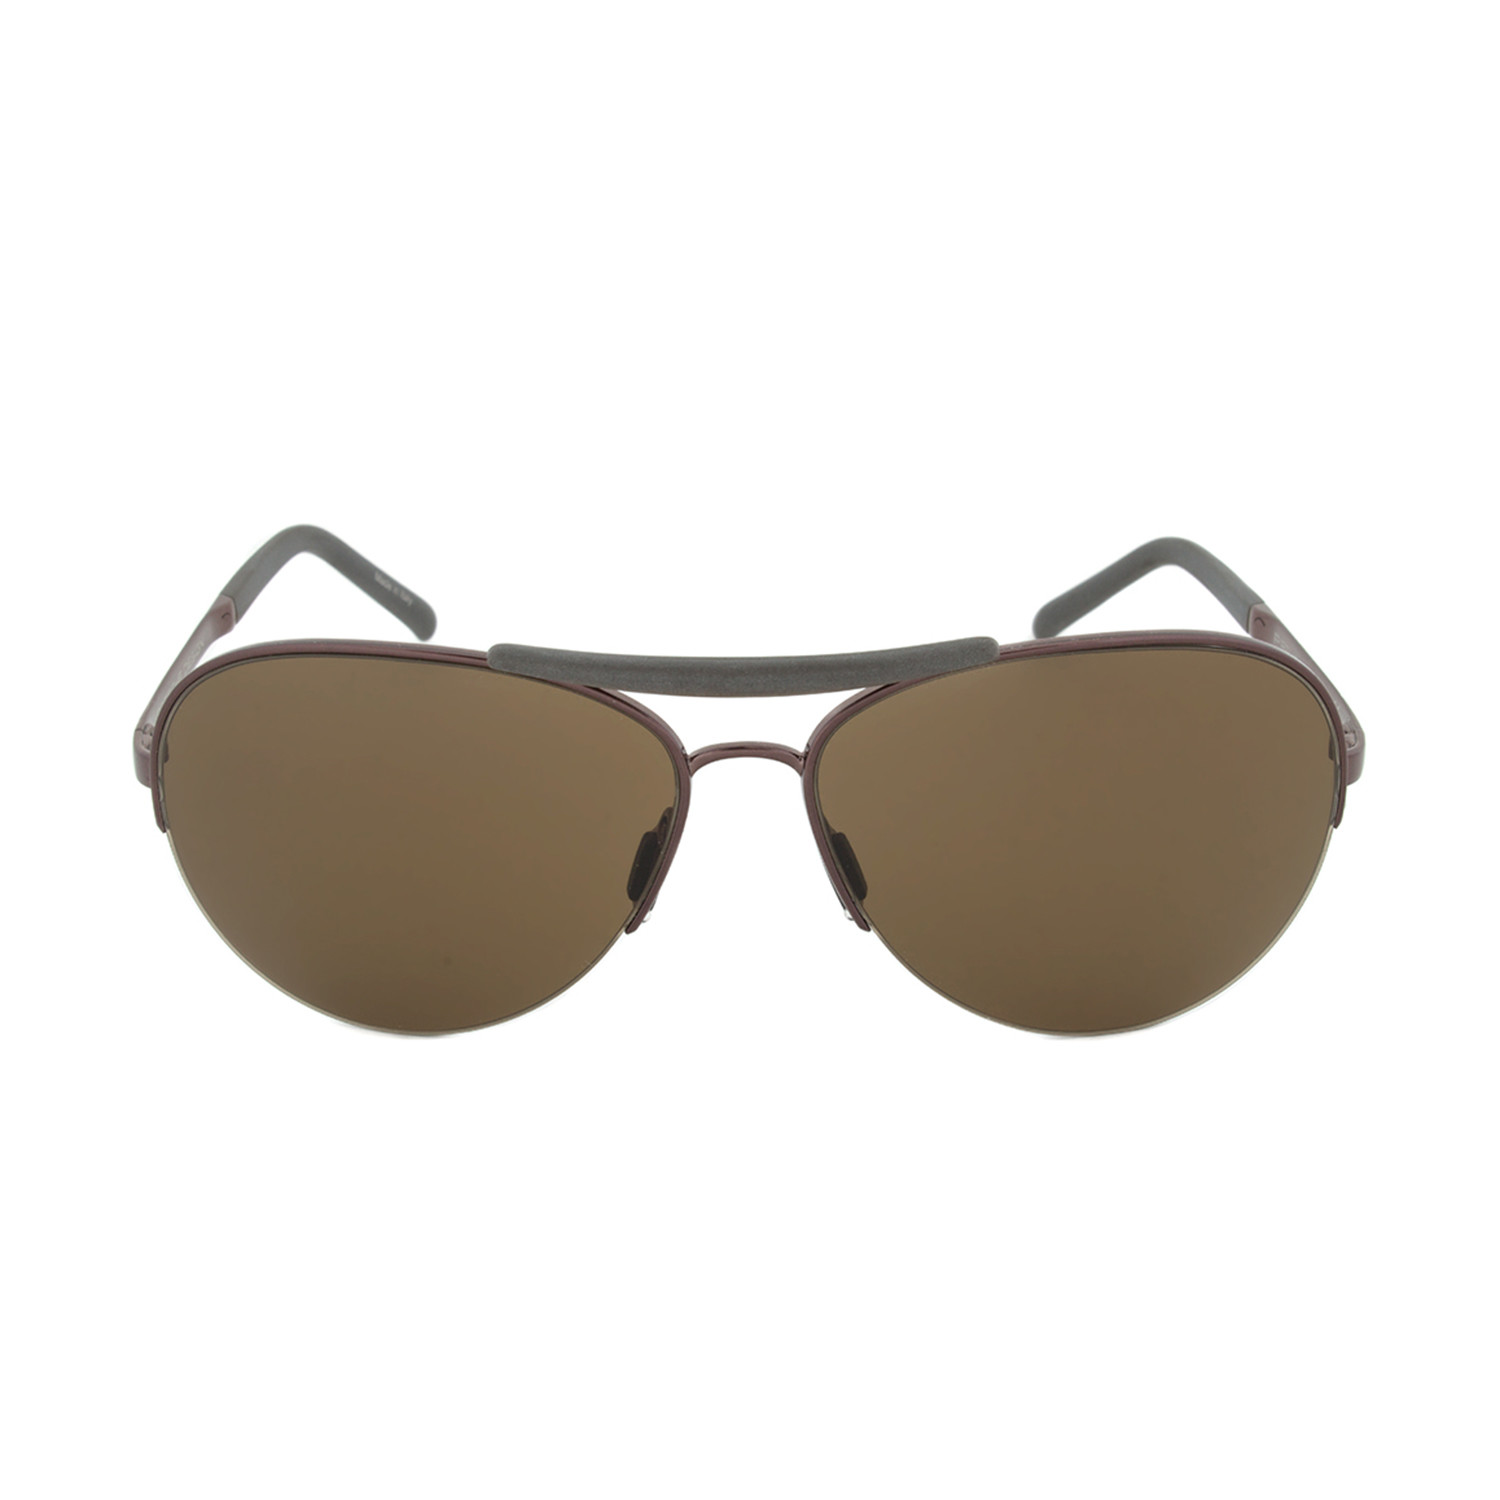 Porsche Aviator Sunglasses Price Gallo